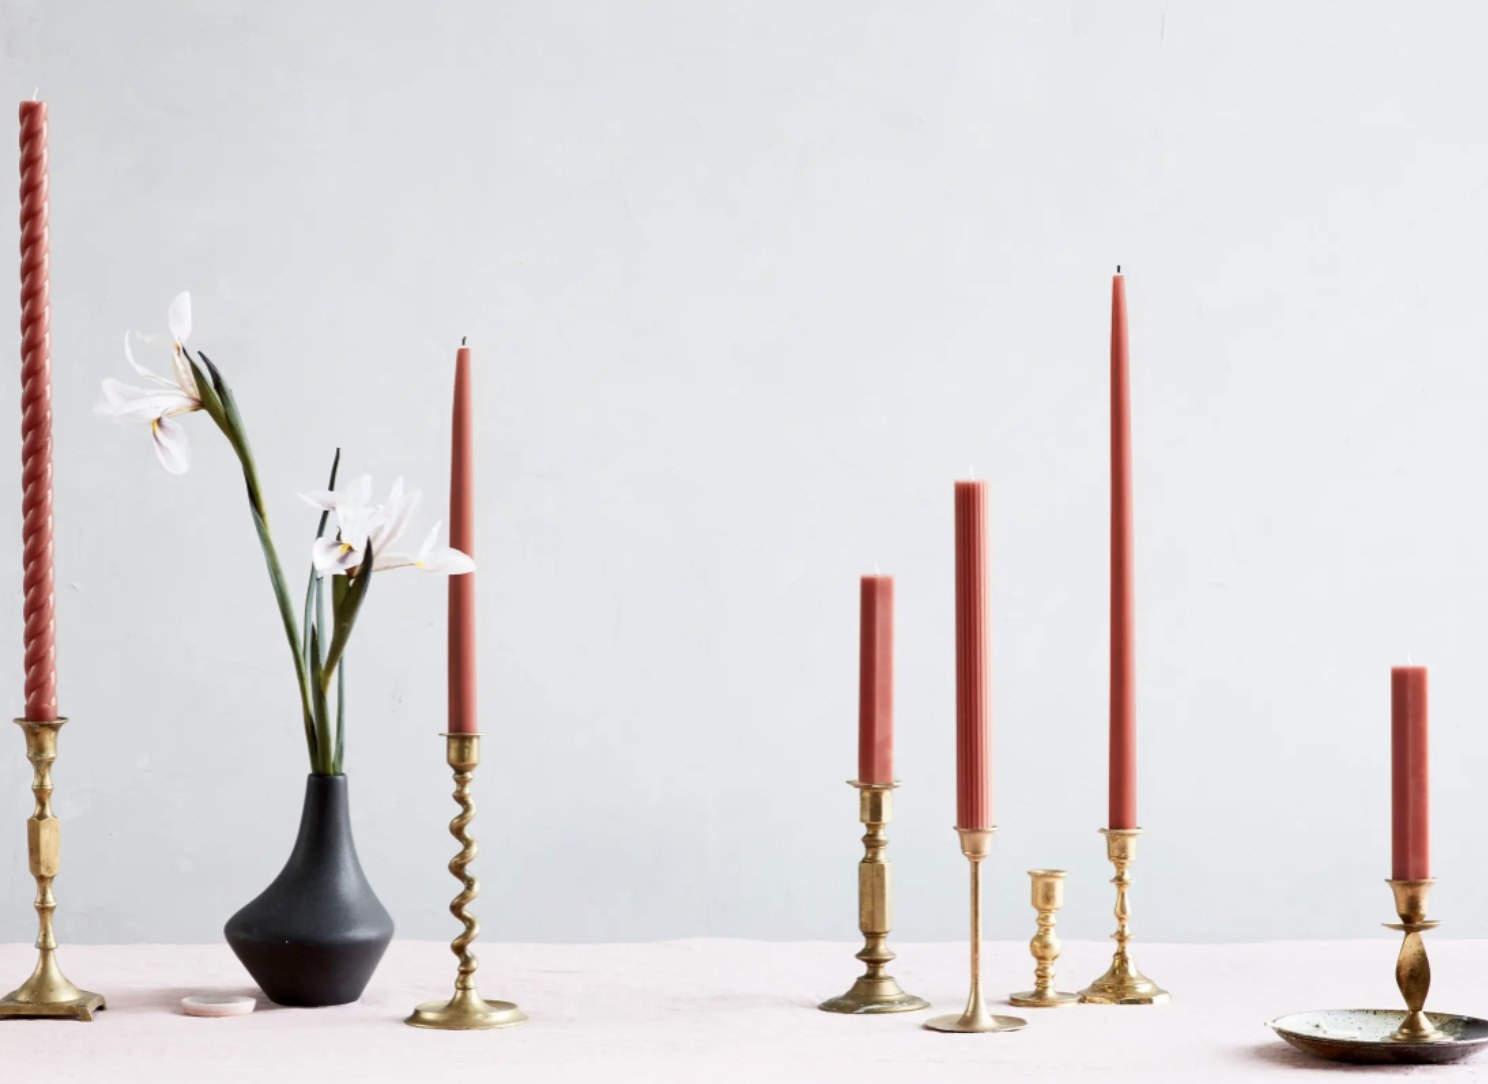 The clay-colored taper candles